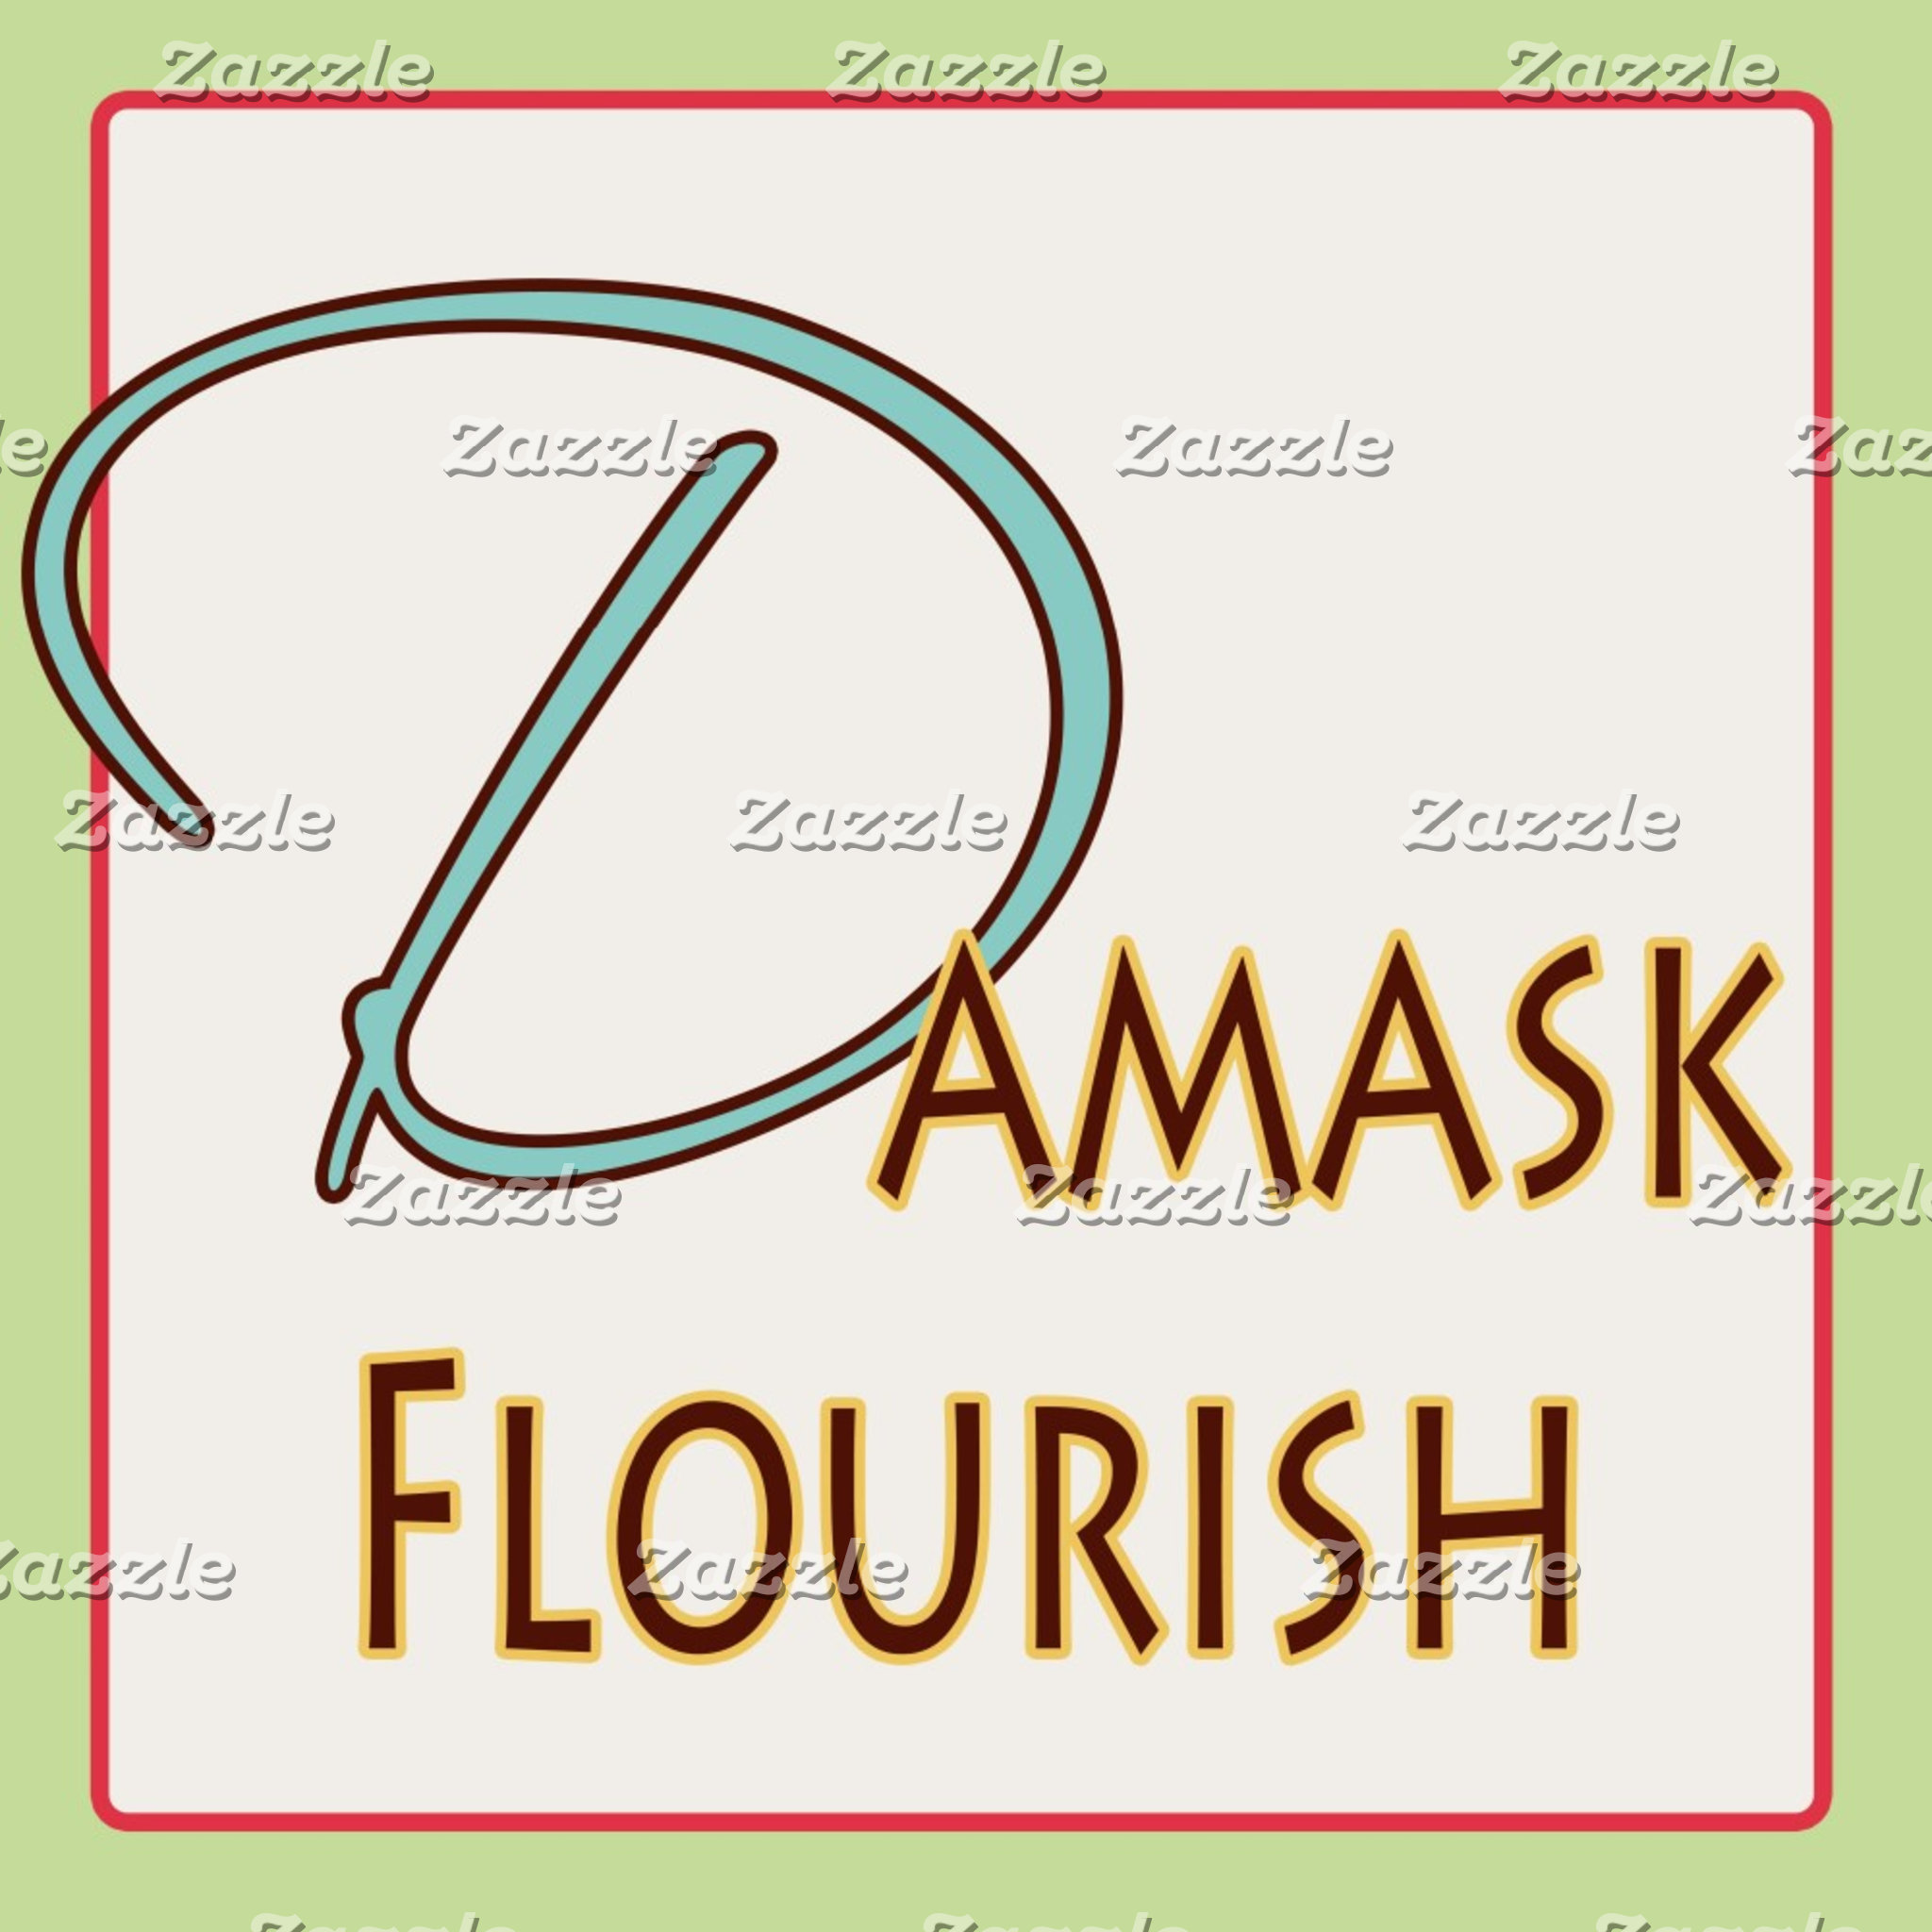 Damask Flourish